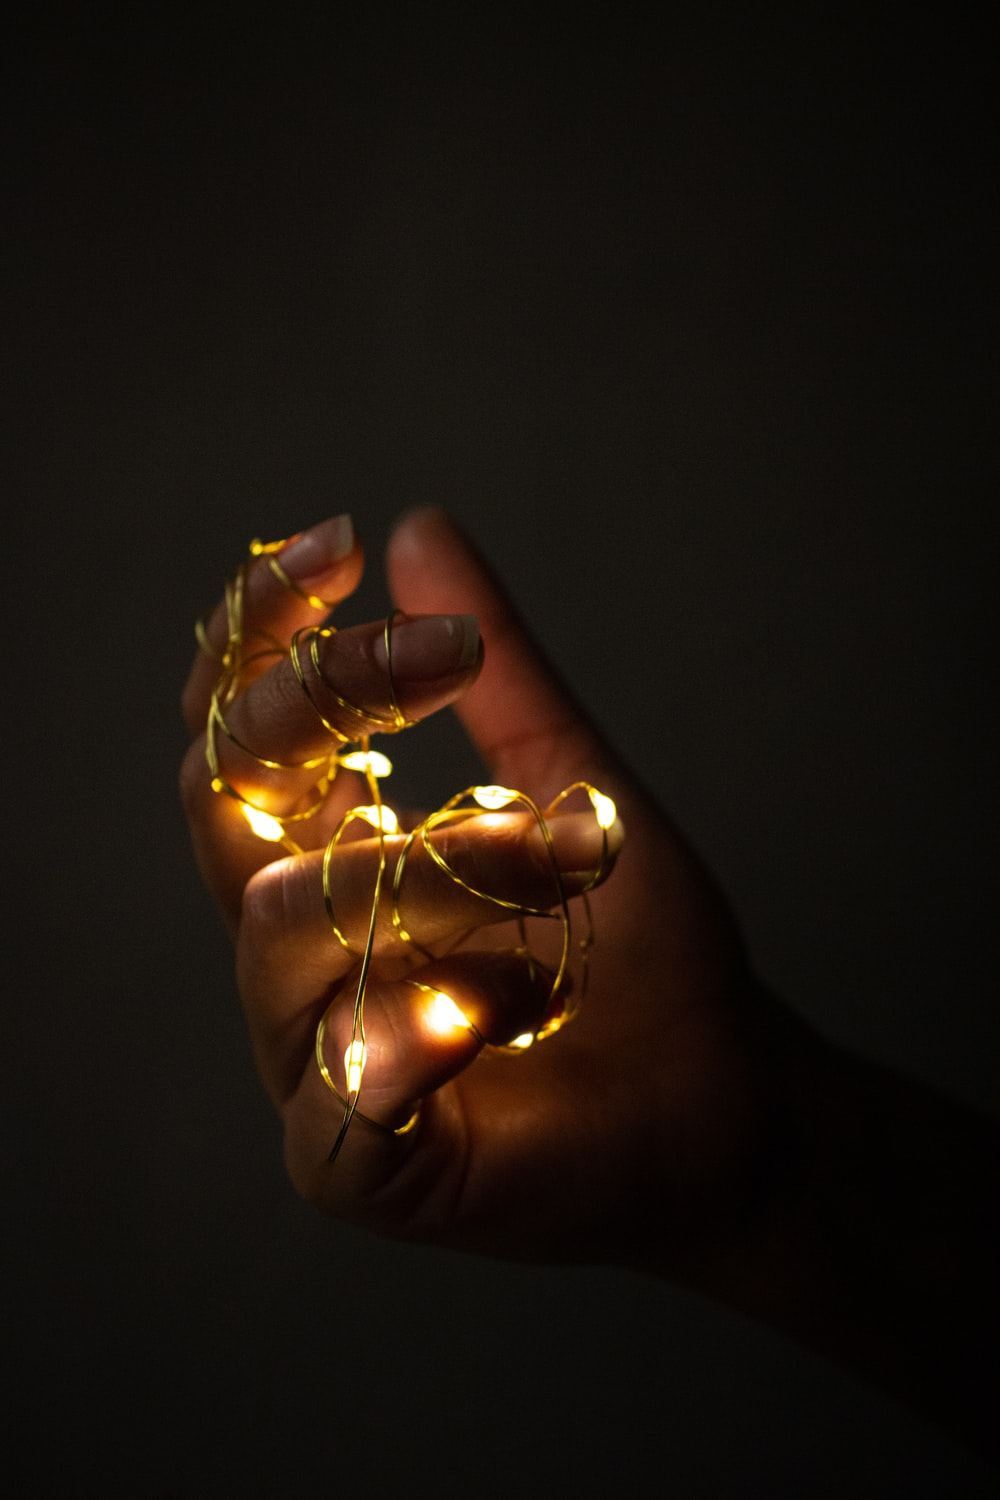 person holding gold string lights